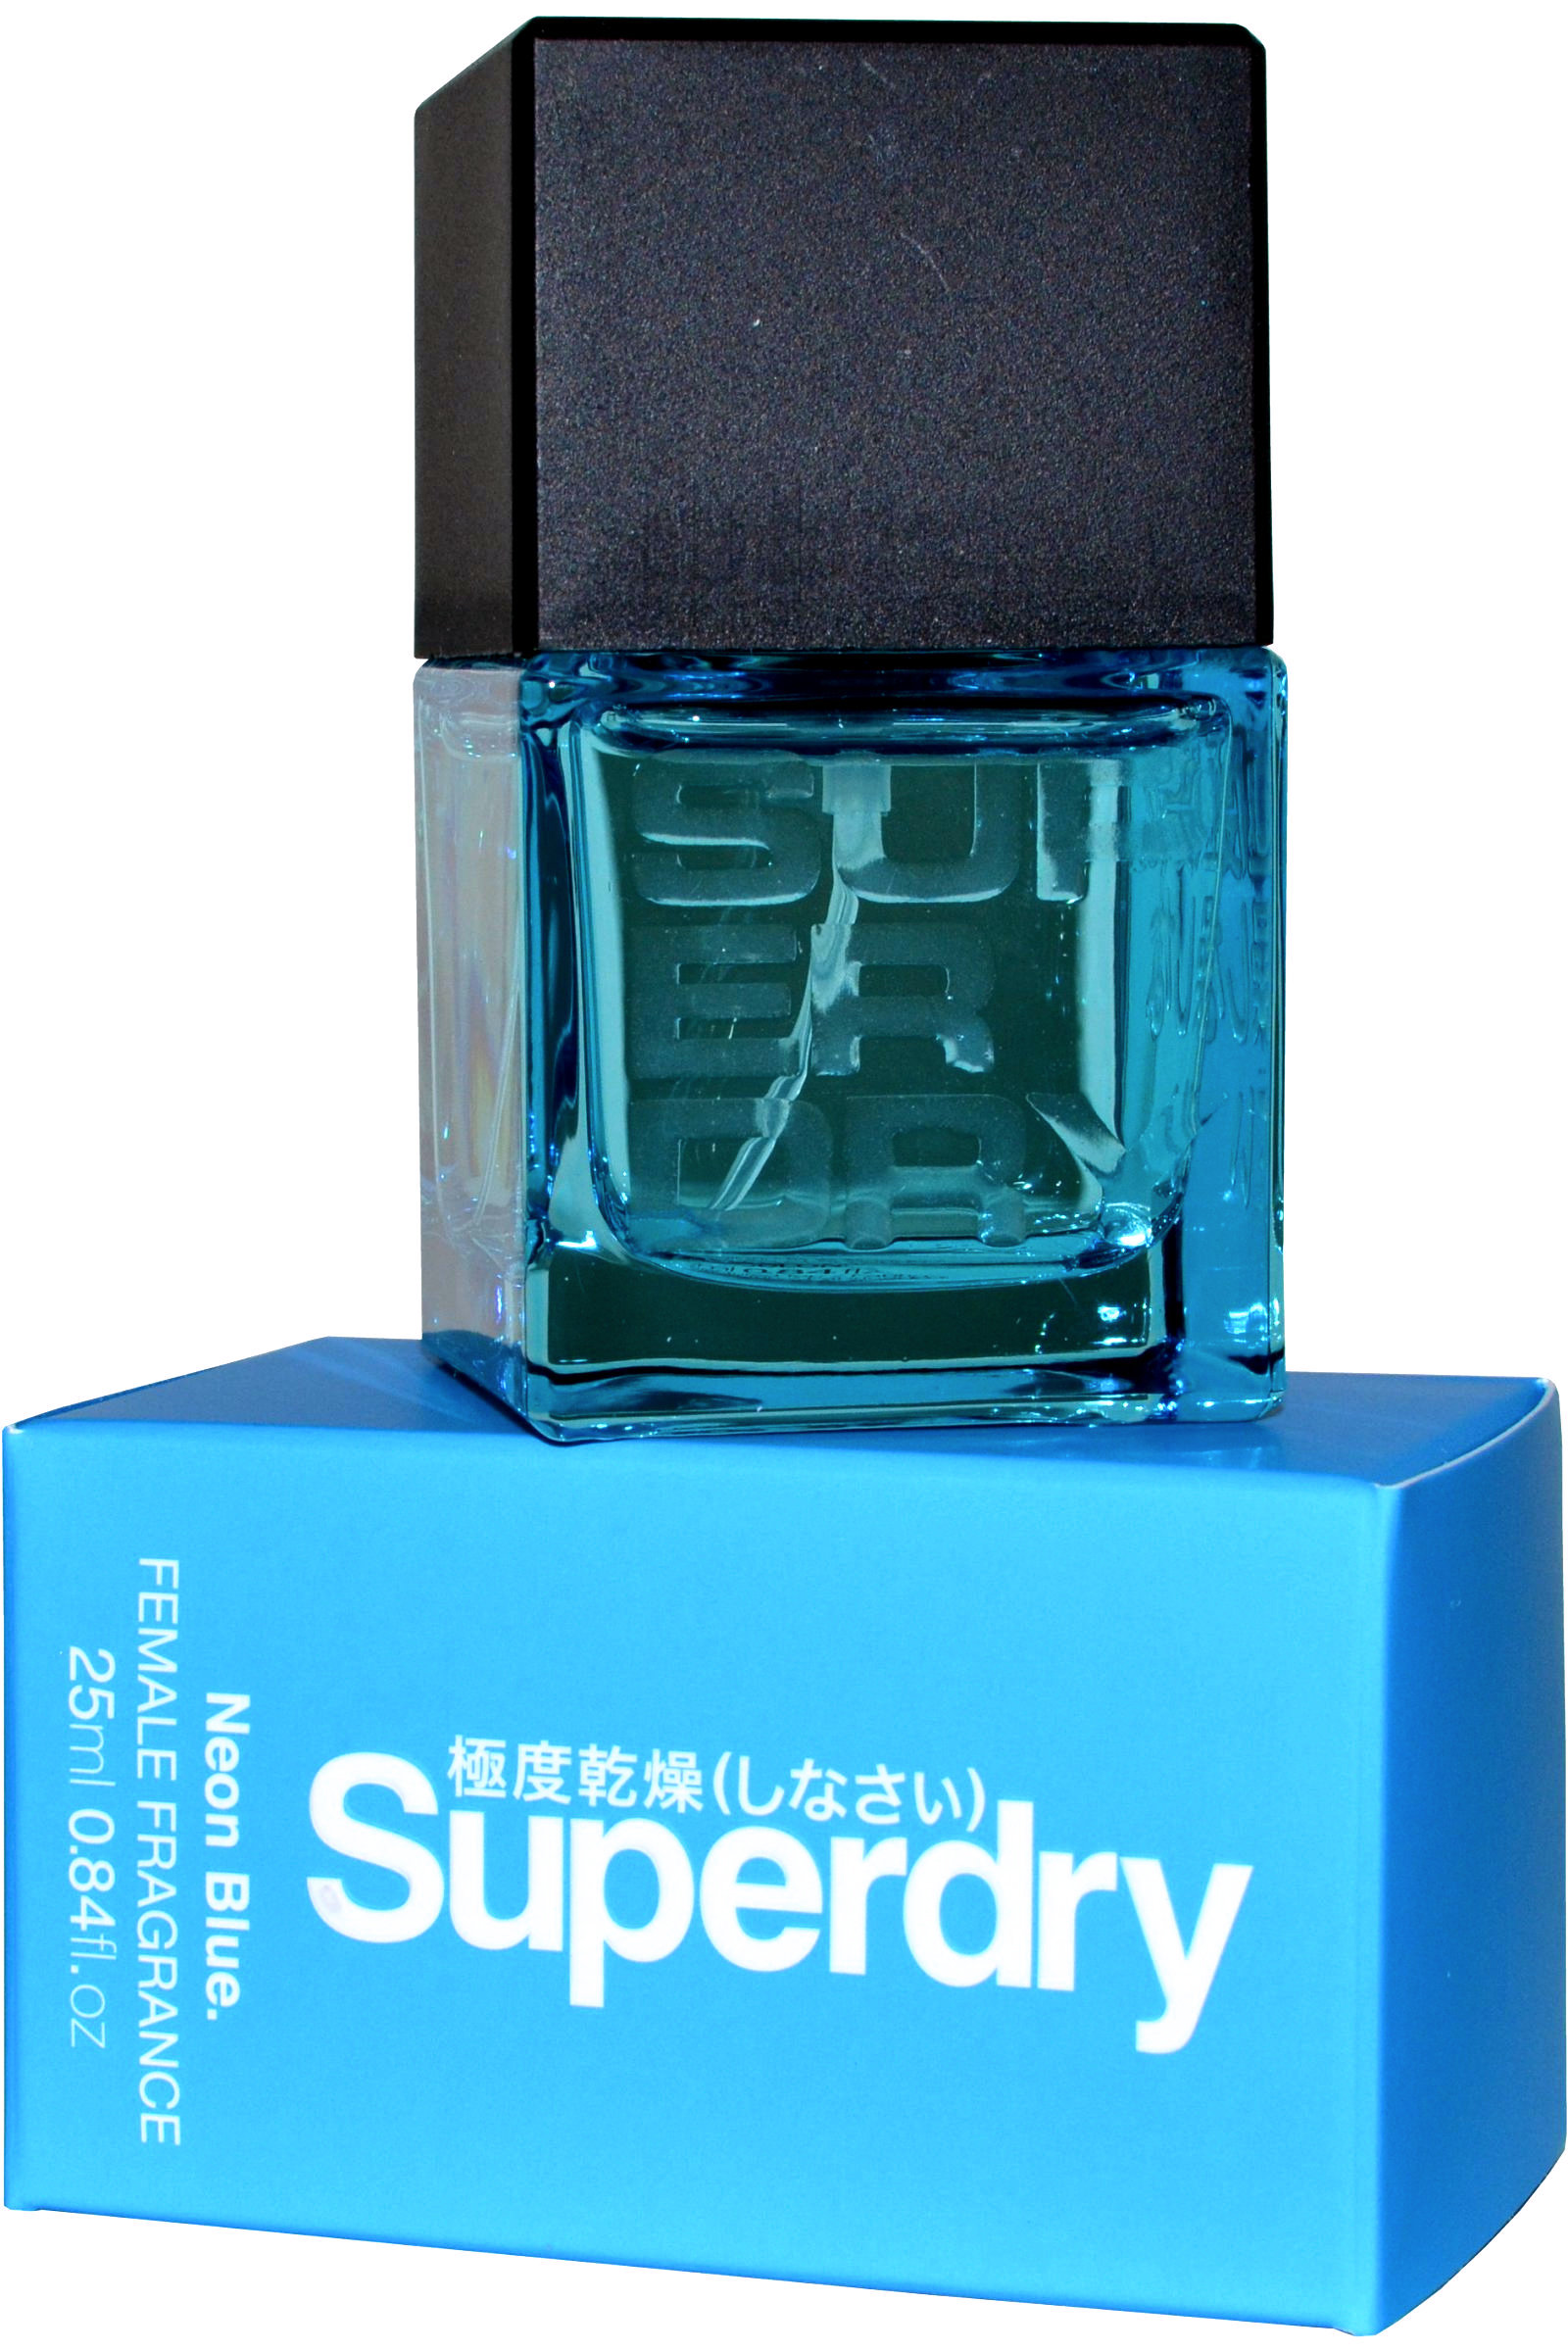 Superdry Neon Blue Female Fragrance Cologne Spray 25ml